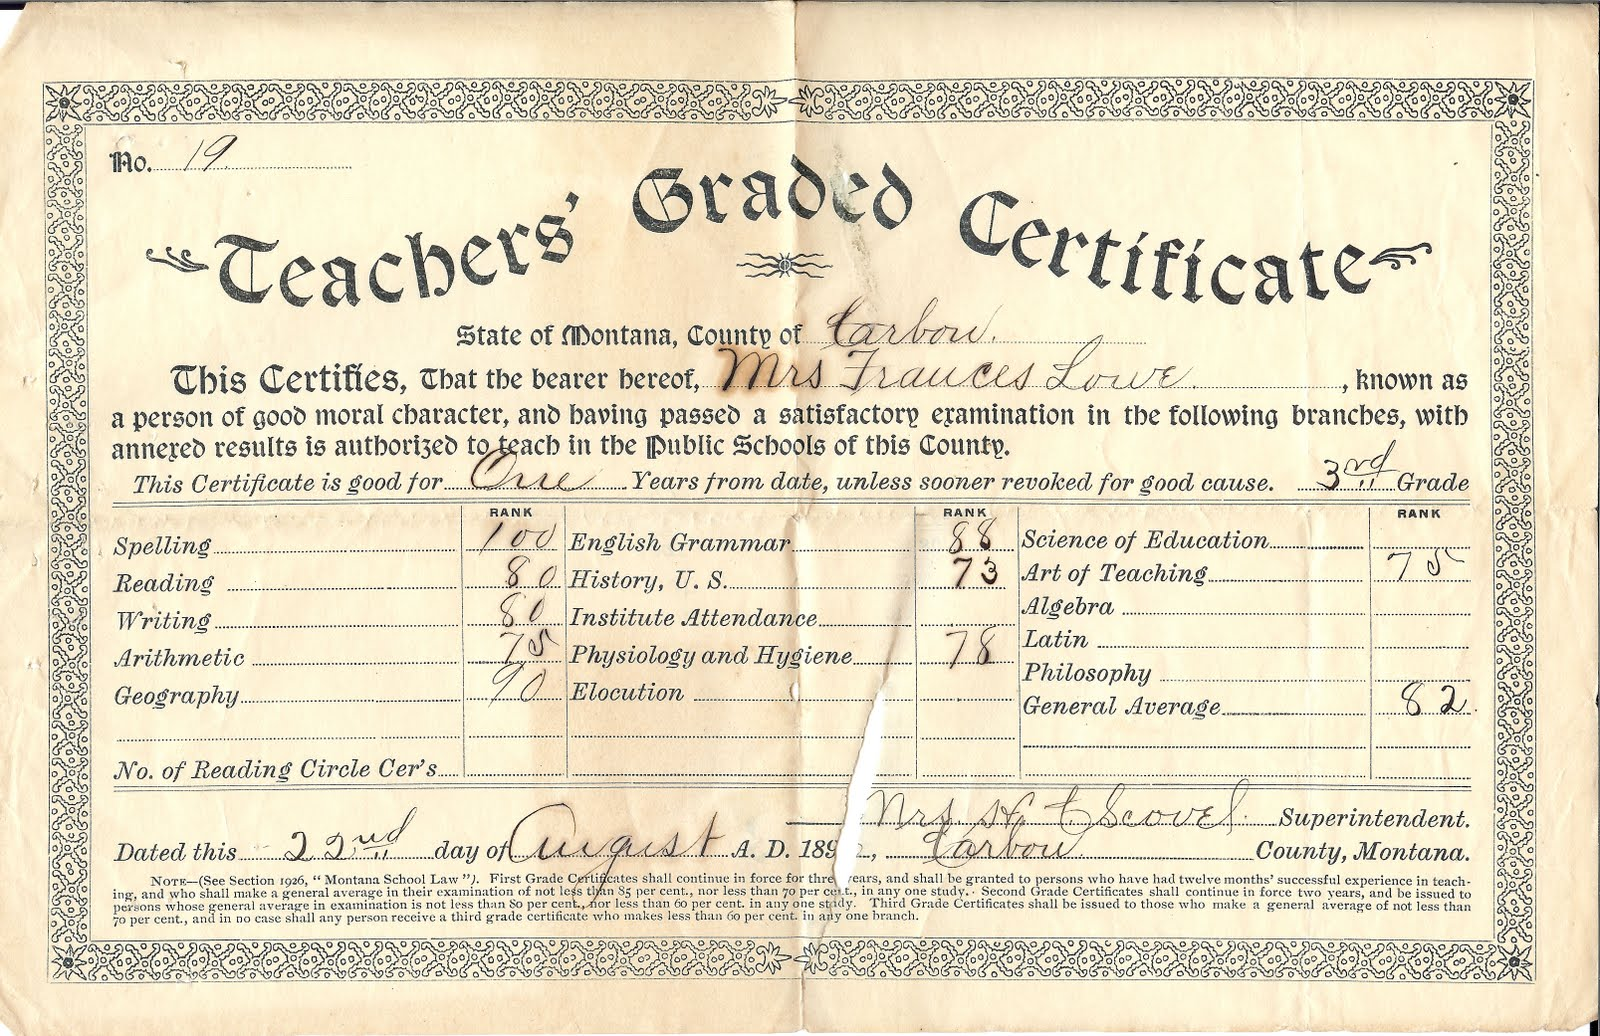 The turning of generations june 2010 continuing from saturdays post where i wrote about my great grandmother frances lowes teachers certificate from boulder county colorado 1betcityfo Gallery